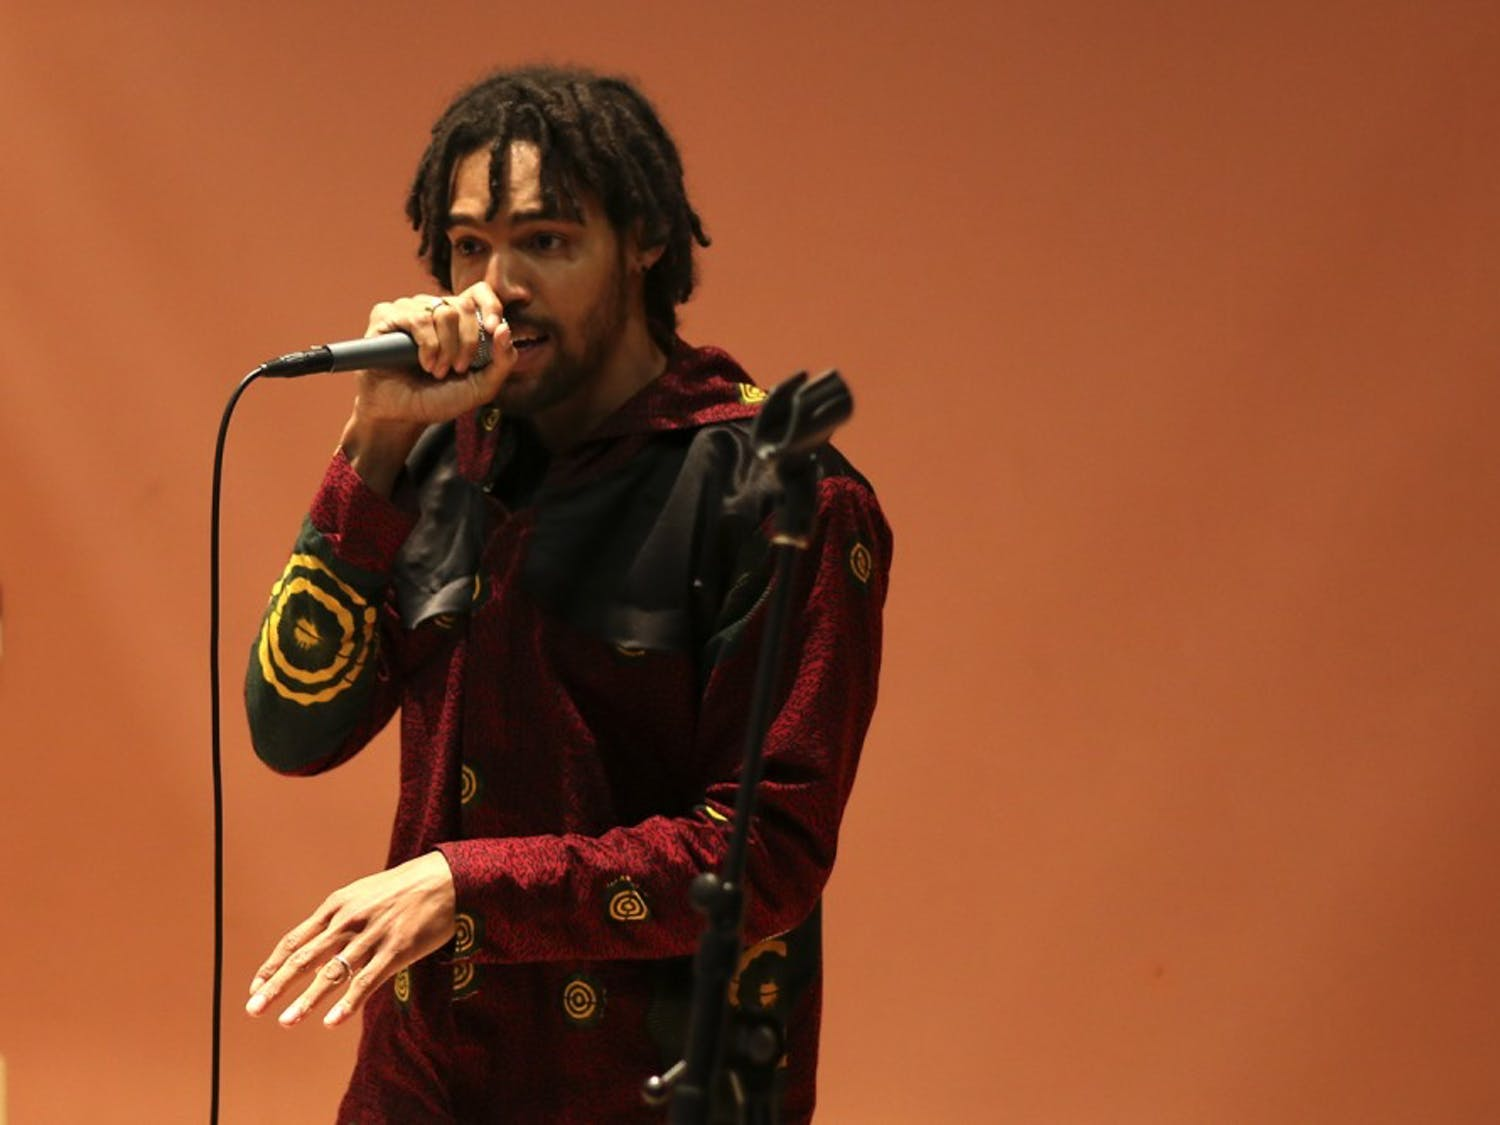 Josh Rowsey, aka (J) Rowdy performs as a part of the the Hip Hop and Social Justiceevent at the Parr Center for Ethics and the Institute for the Arts and Humanities.